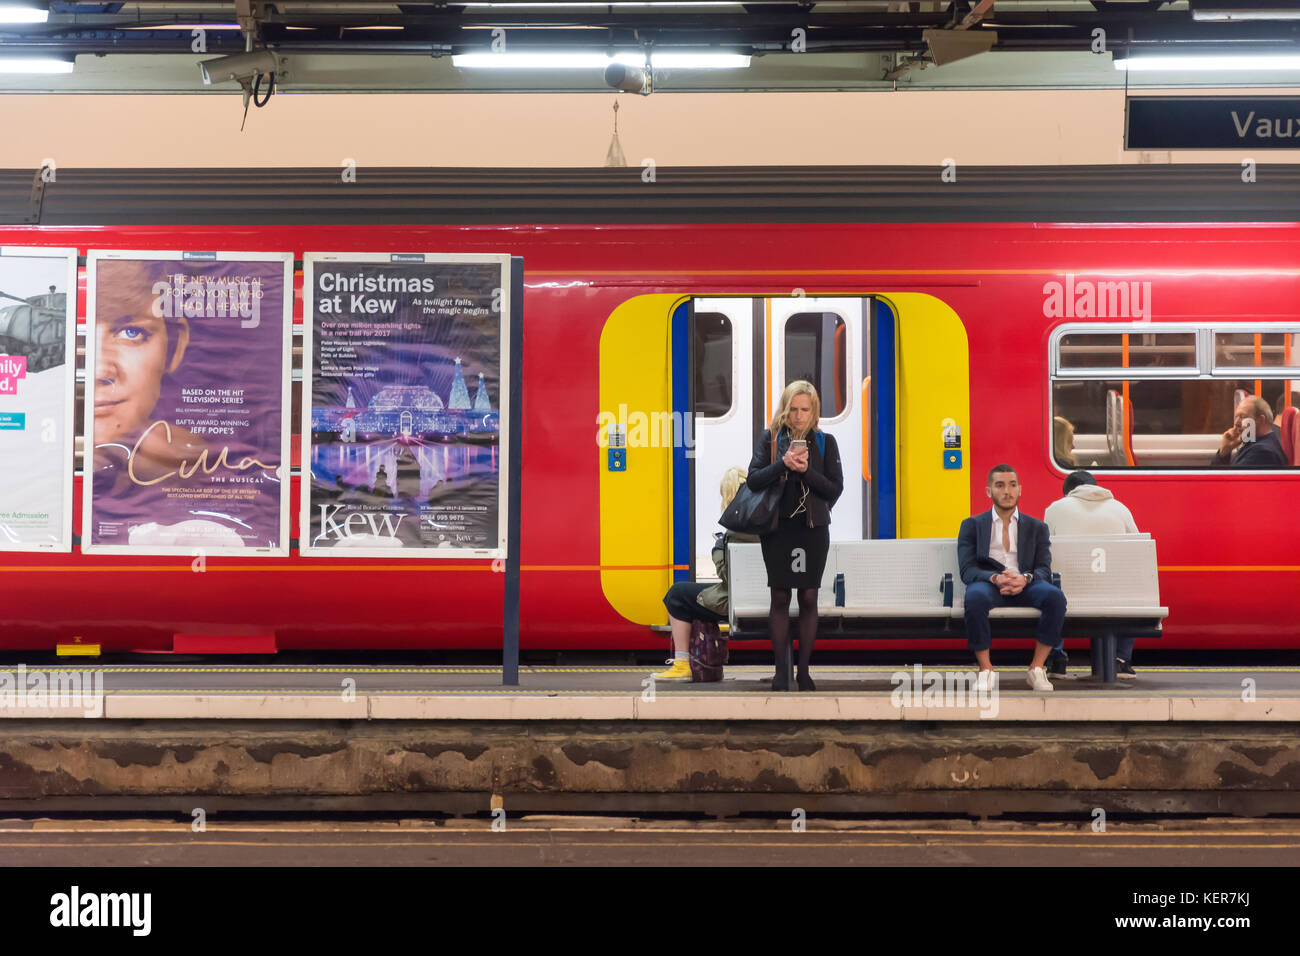 South Western Railway train on platform at Vauxhall Railway Station, Vauxhall, London Borough of Lambeth, Greater - Stock Image